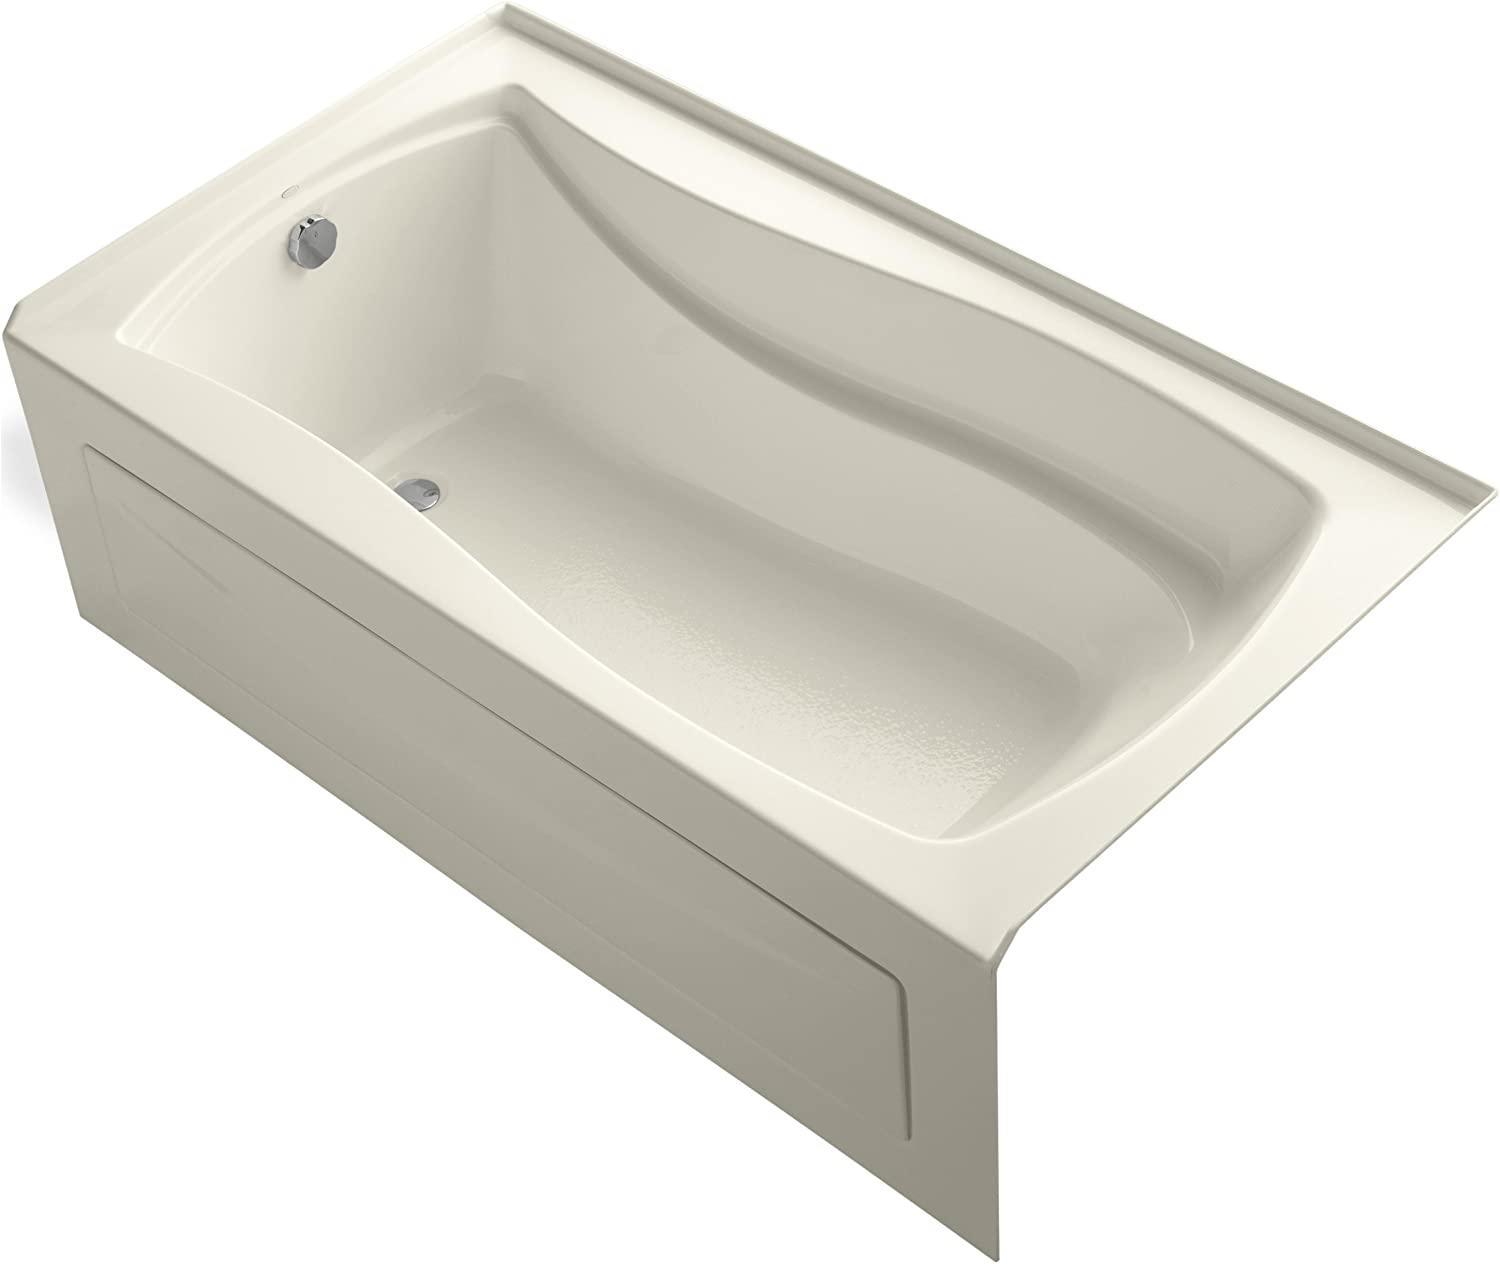 Kohler K 1229 La 0 Mariposa 5 5 Foot Bath White Soaking Tubs Amazon Com